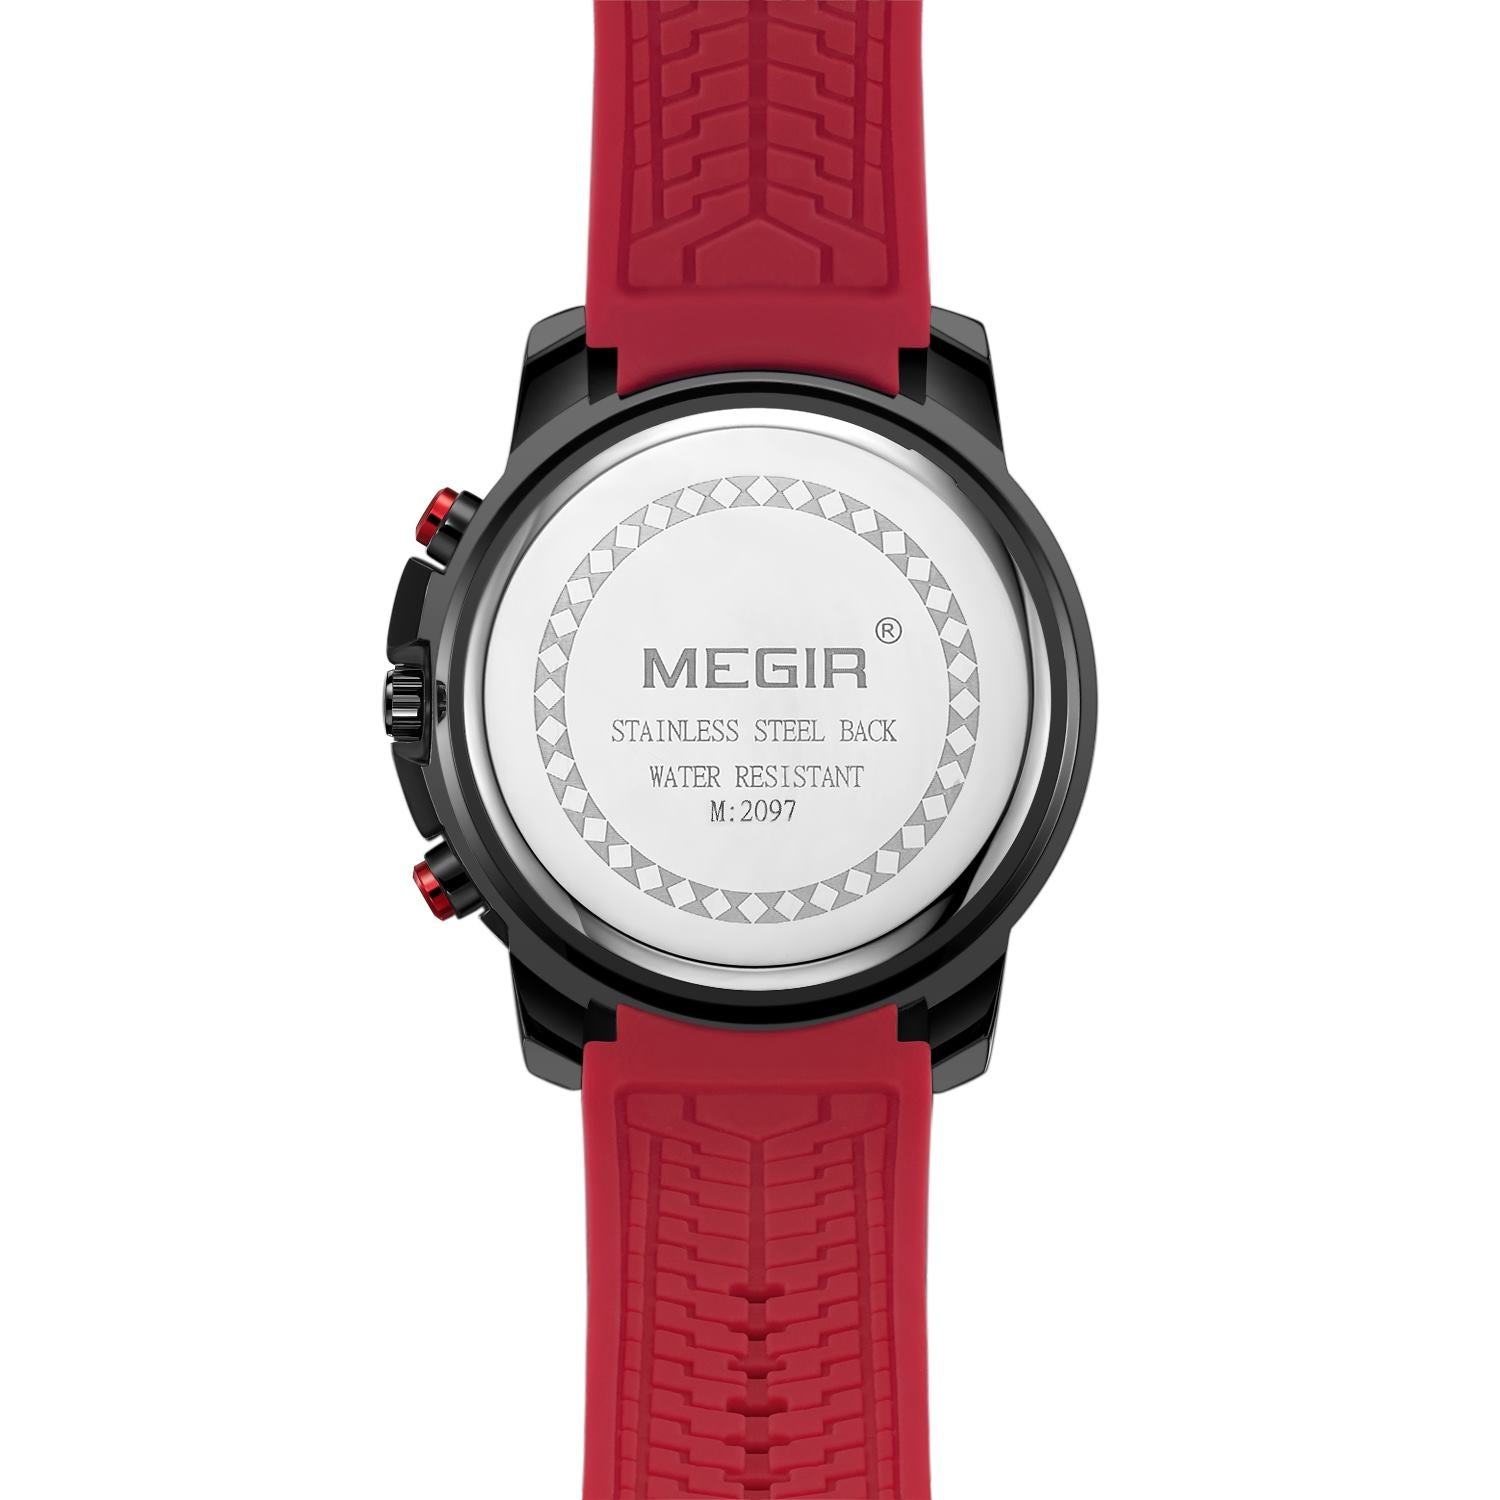 MEGIR Men's Sports Watches Chronograph 2097 - MEGIR